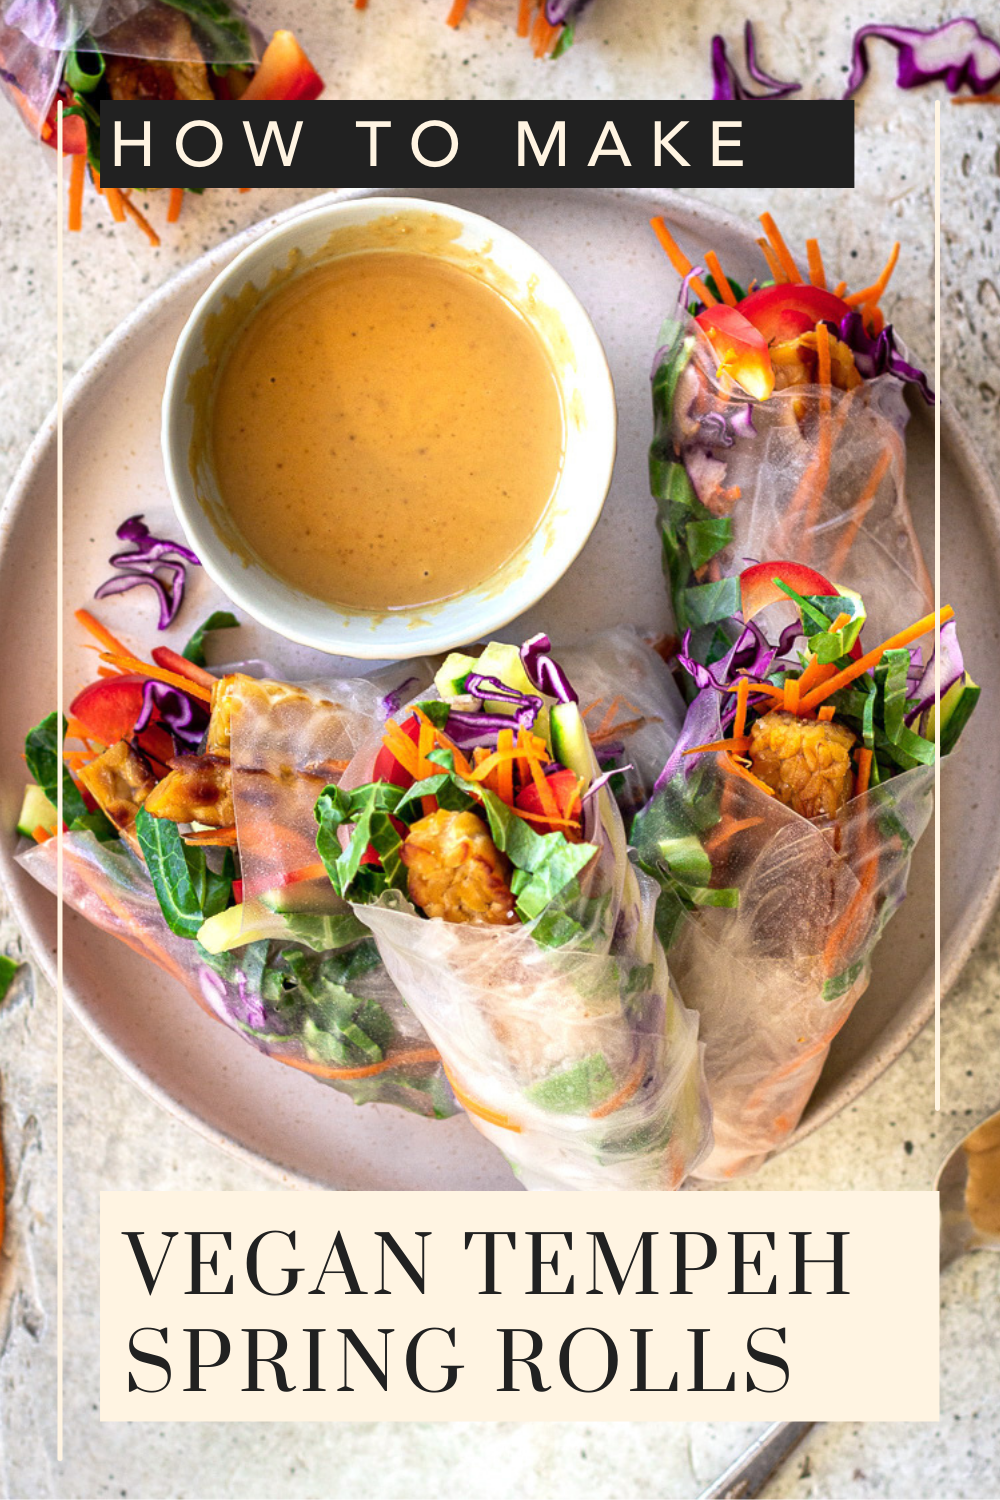 Vegan Spring Rolls with Peanut Dipping Sauce by Vancouver with Love